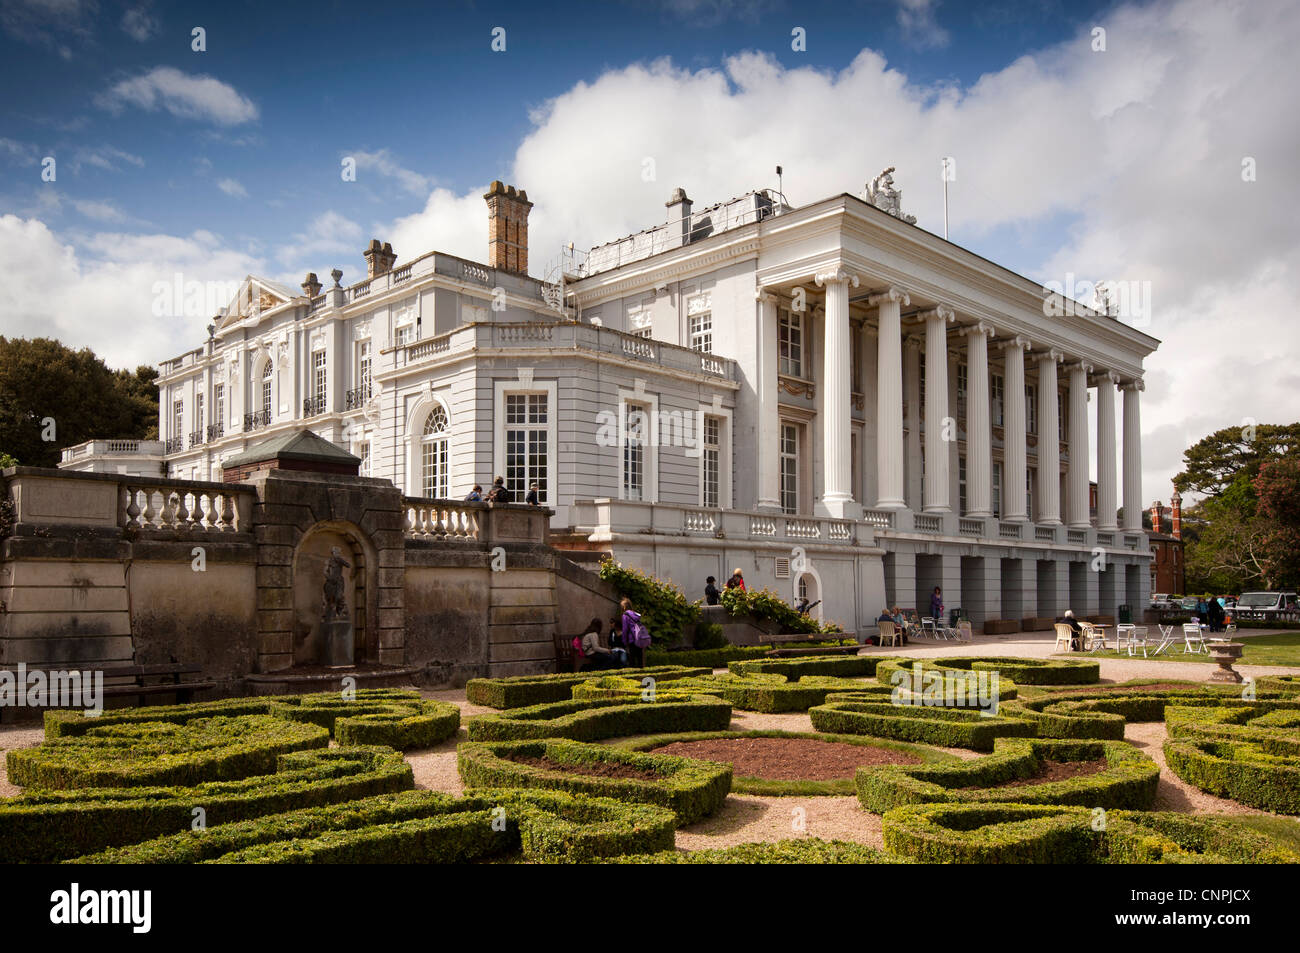 UK, England, Devon, Paignton, Oldway Mansion, former home of Singer family, now civic building - Stock Image